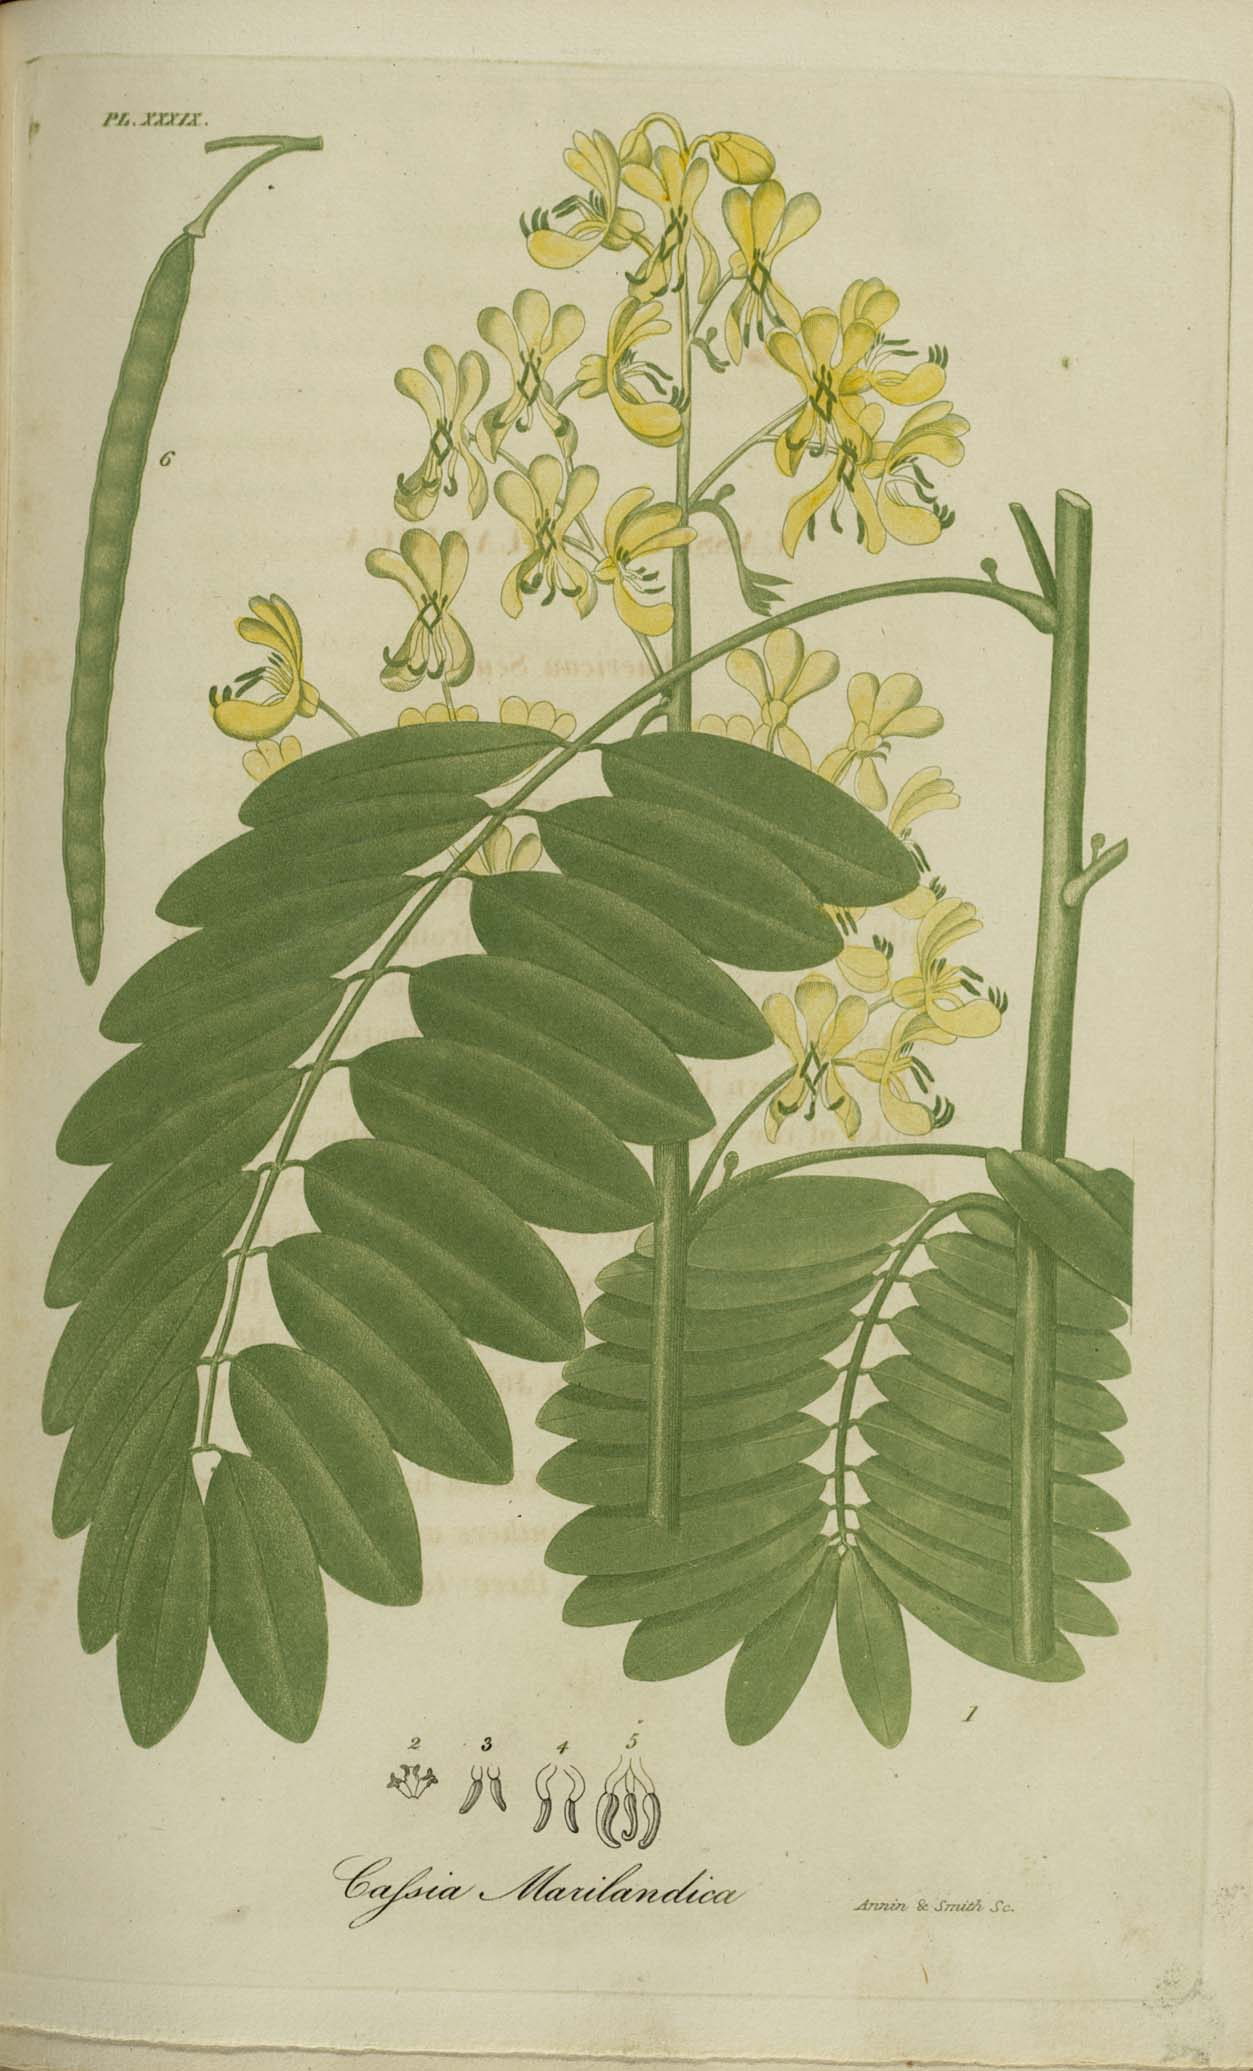 Image of Cassia marilandica